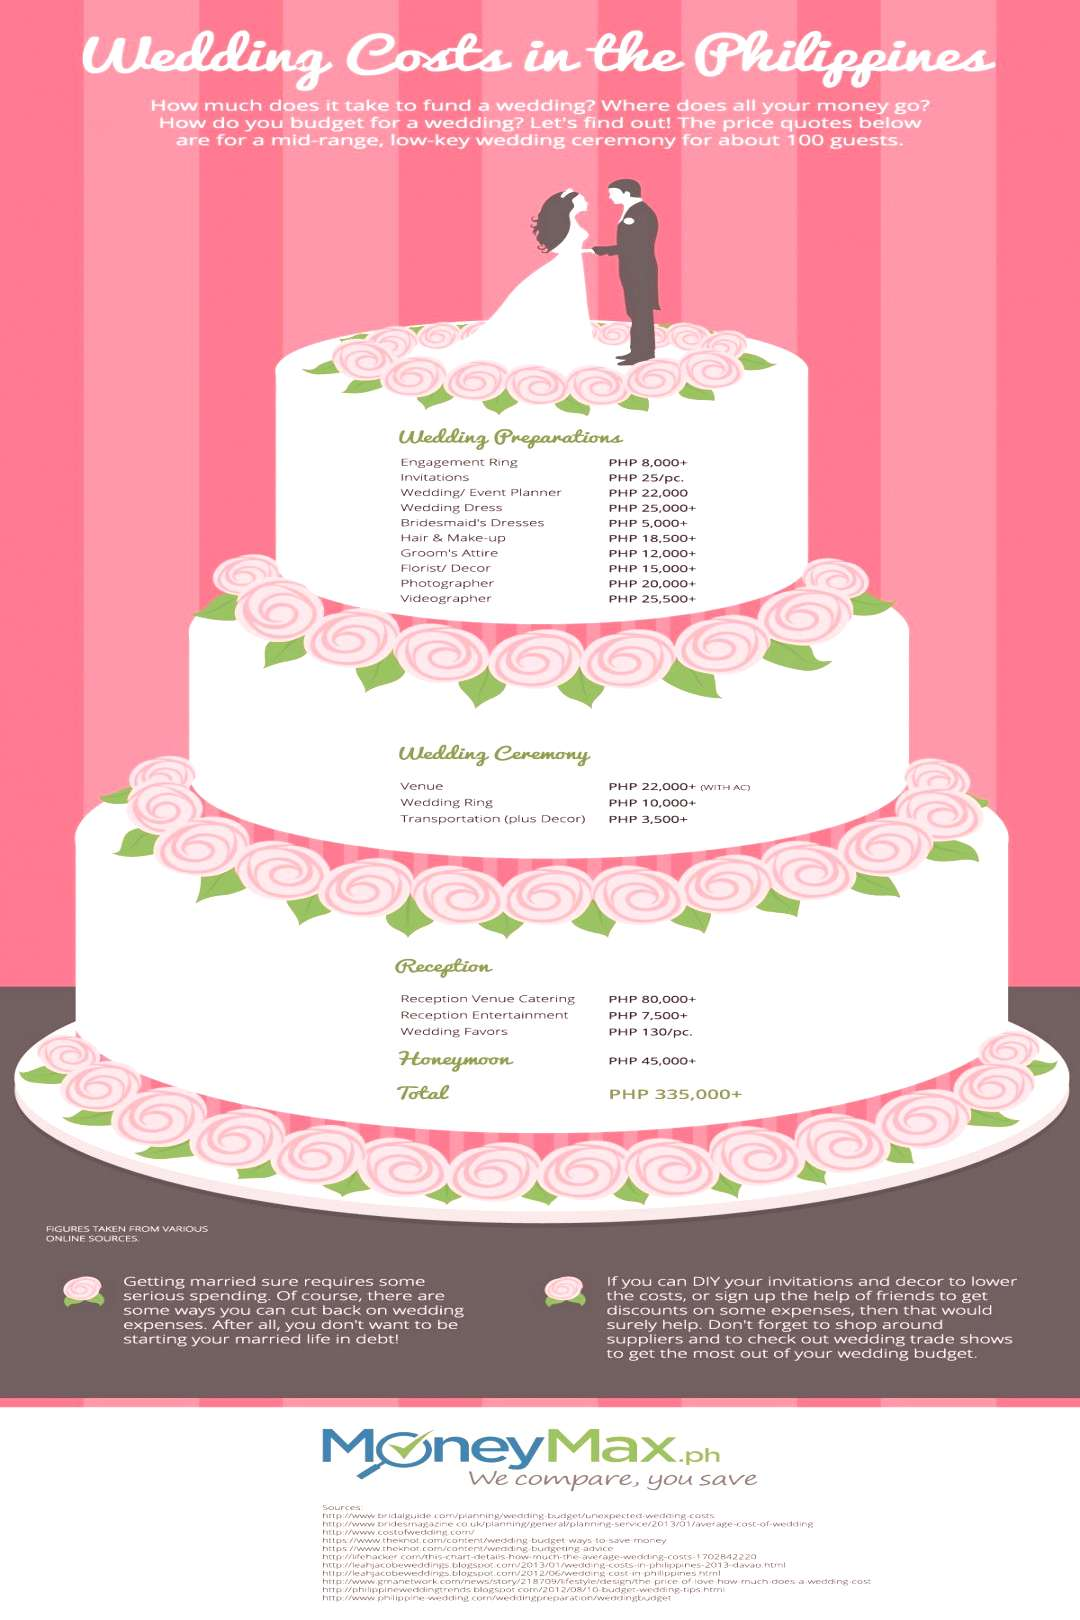 20 How Much Does A Wedding Cake Cost Pics, Wedding Cakes Upper West Side Nyc - -